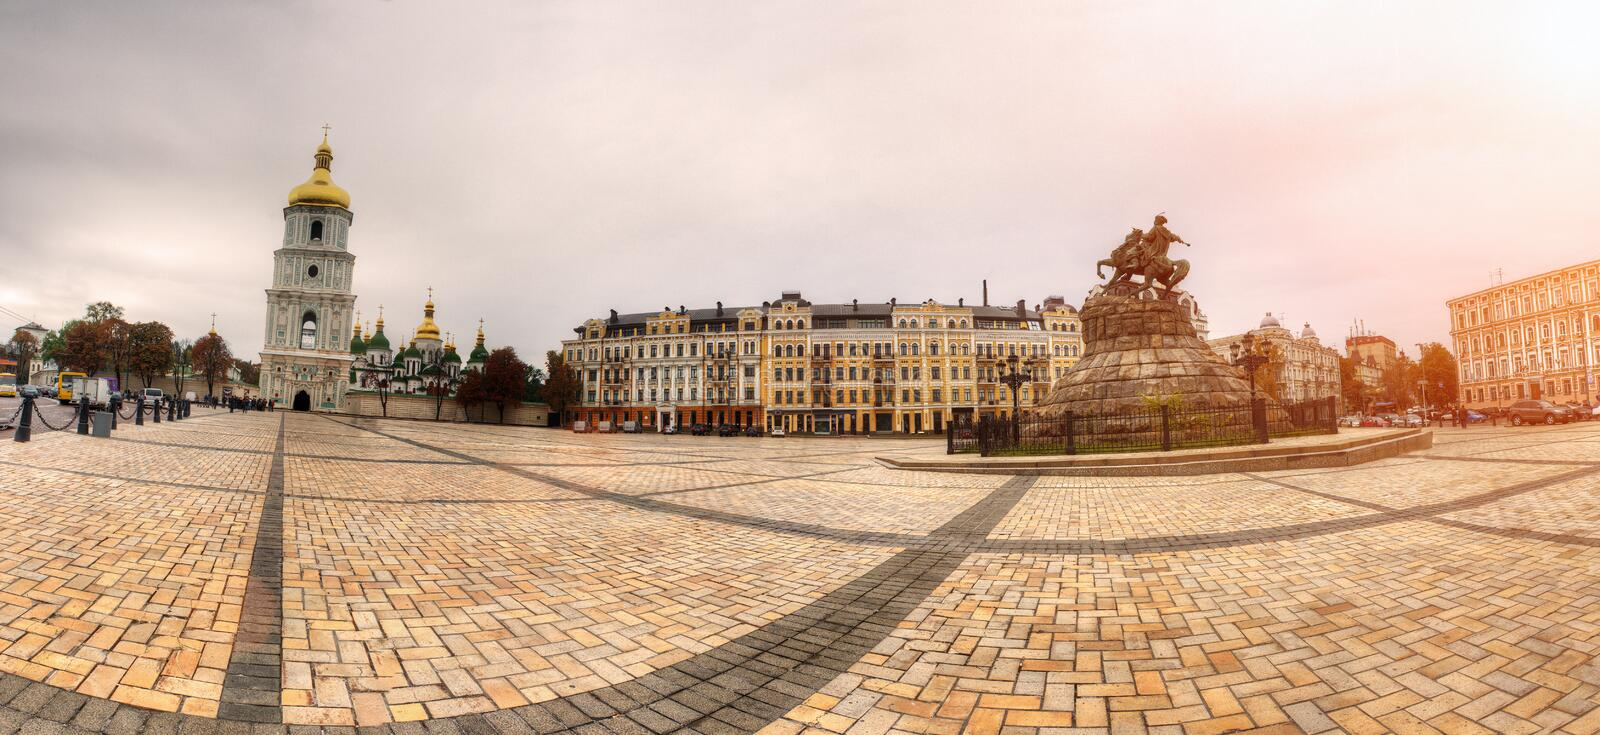 Sofiyska square panorama with monument of Bohdan Khmelnytsky on right side stock image